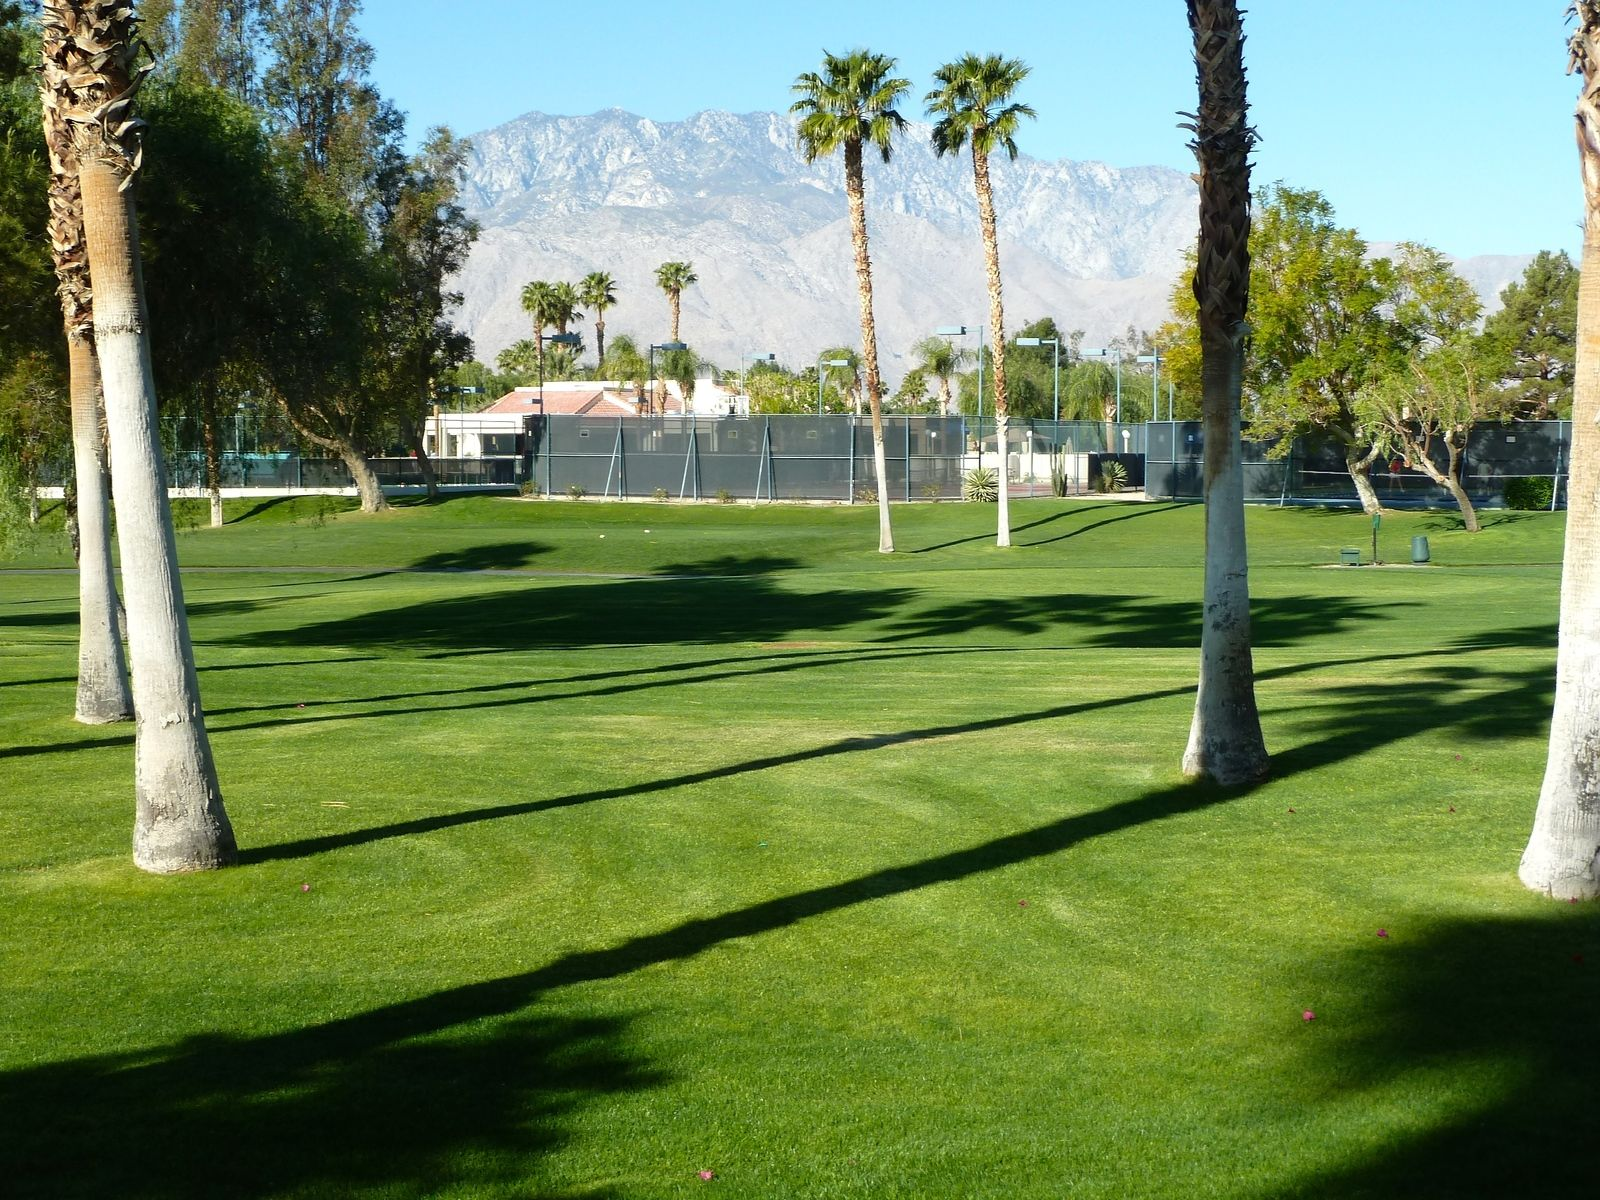 tennis-tourist-desert-princess-resort-fairway-and-tennis-courts-teri-church